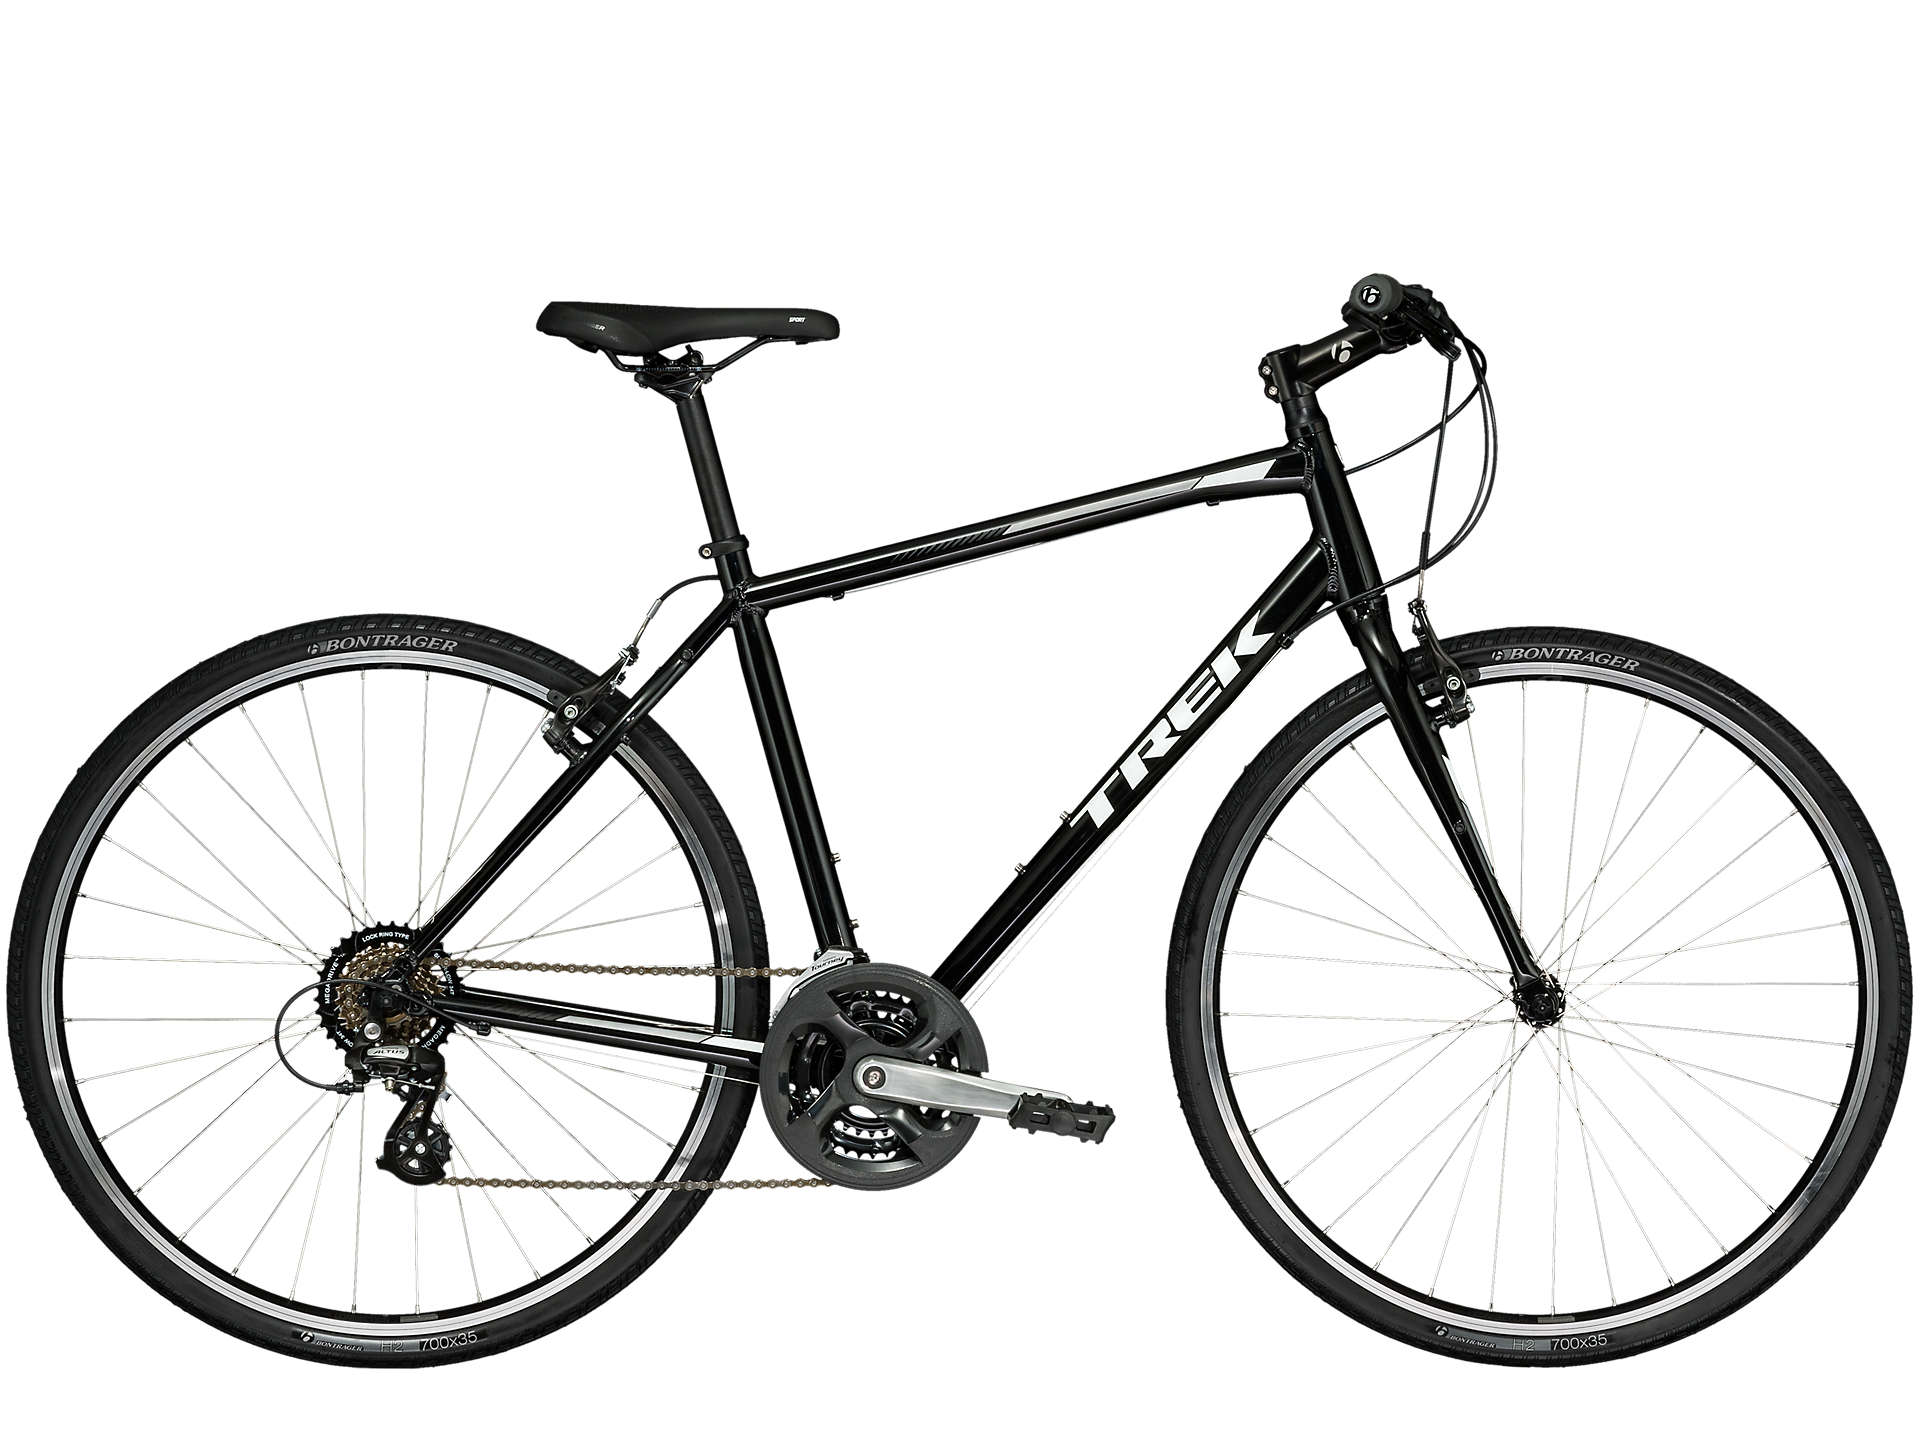 Trek FX 1 2020 Mens Bike 2020 in Black £350.00